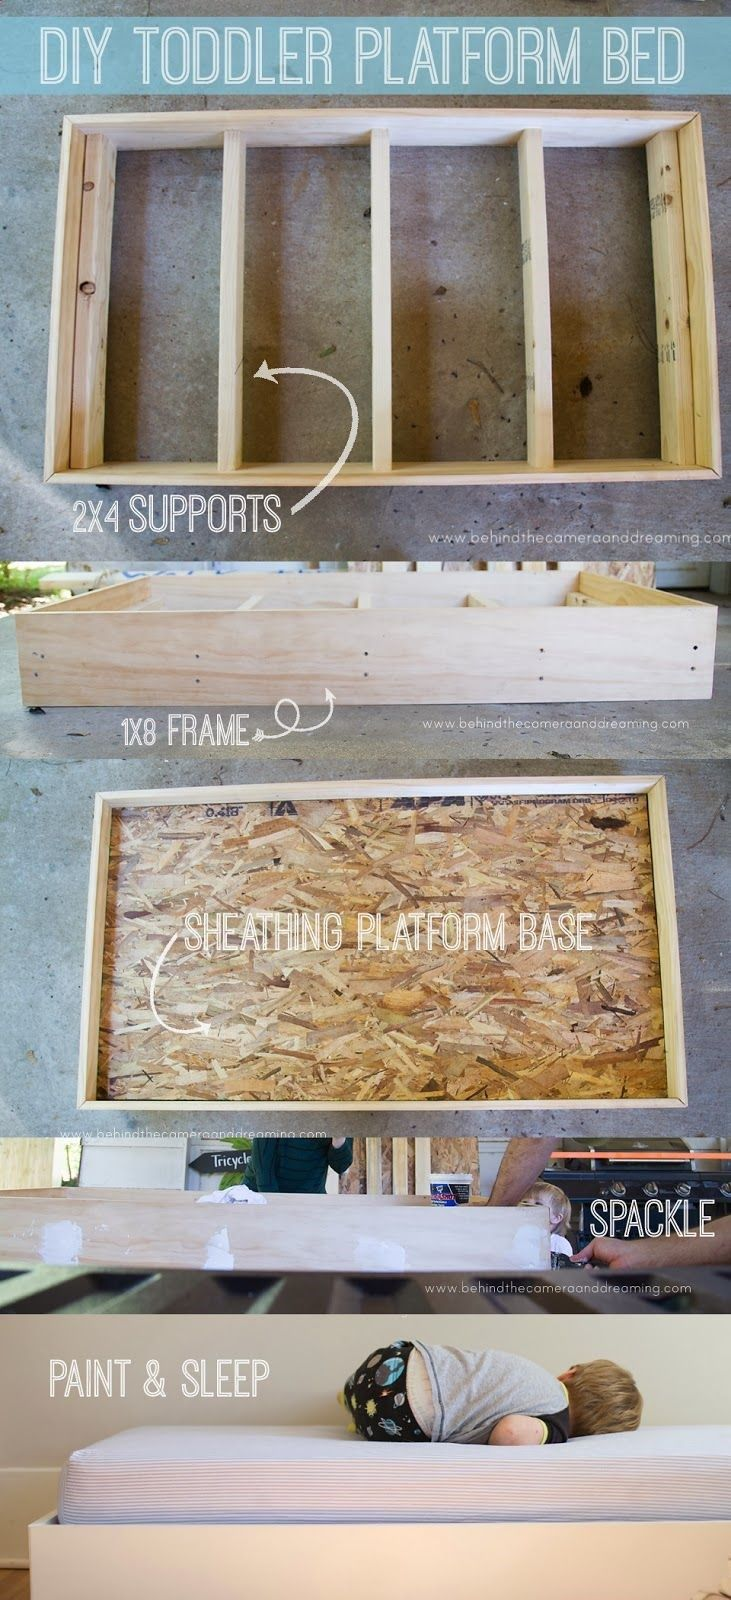 Behind the Camera and Dreaming: DIY Toddler Bed #toddler #diy | Modern Home Decor